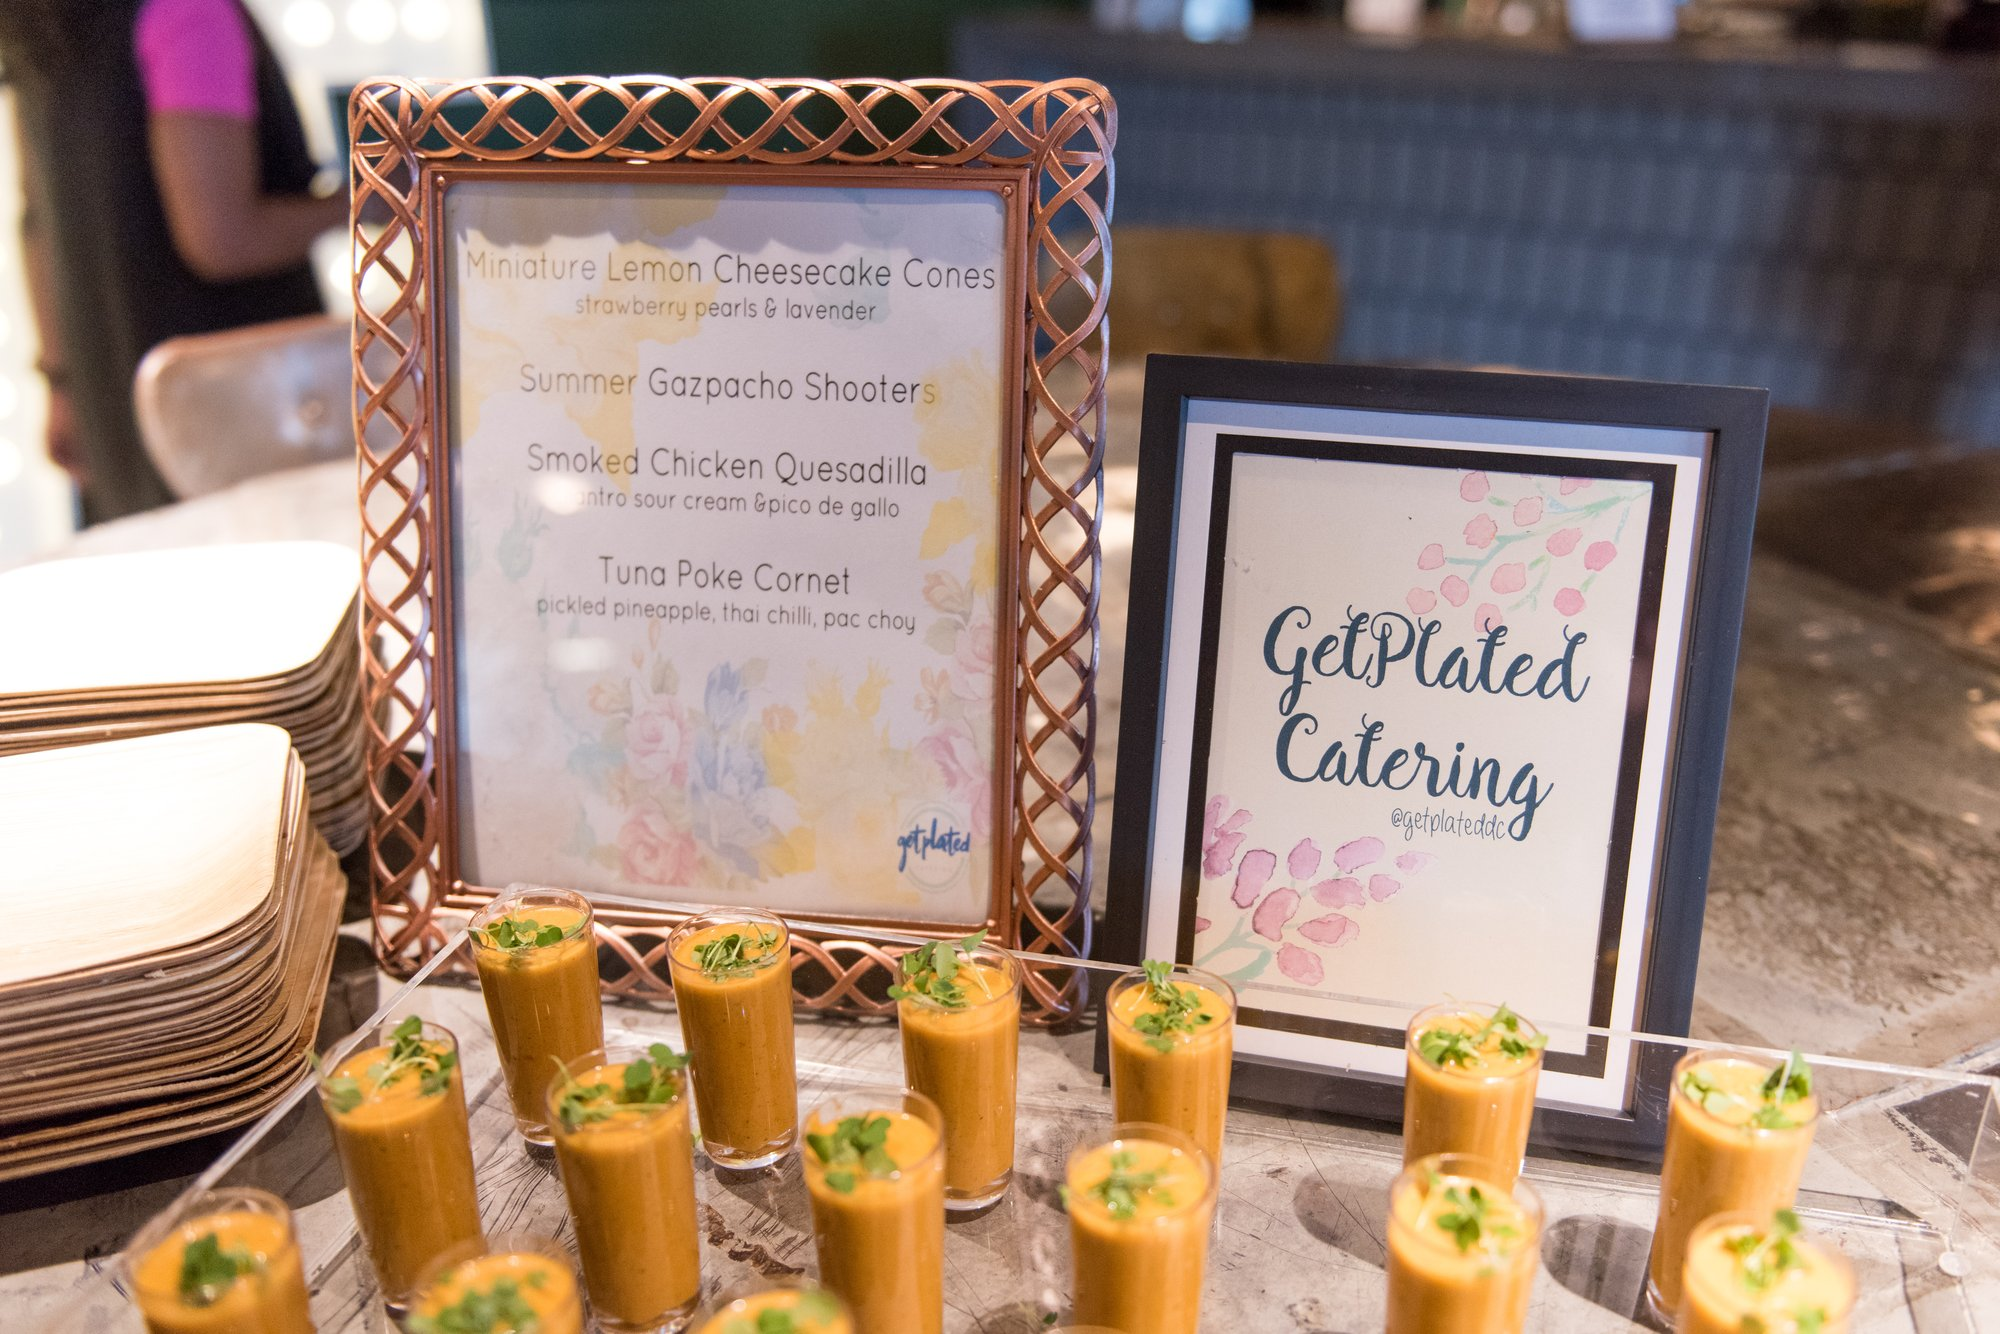 Summer Gaspacho Shooters from Washington, DC caterer Get Plated